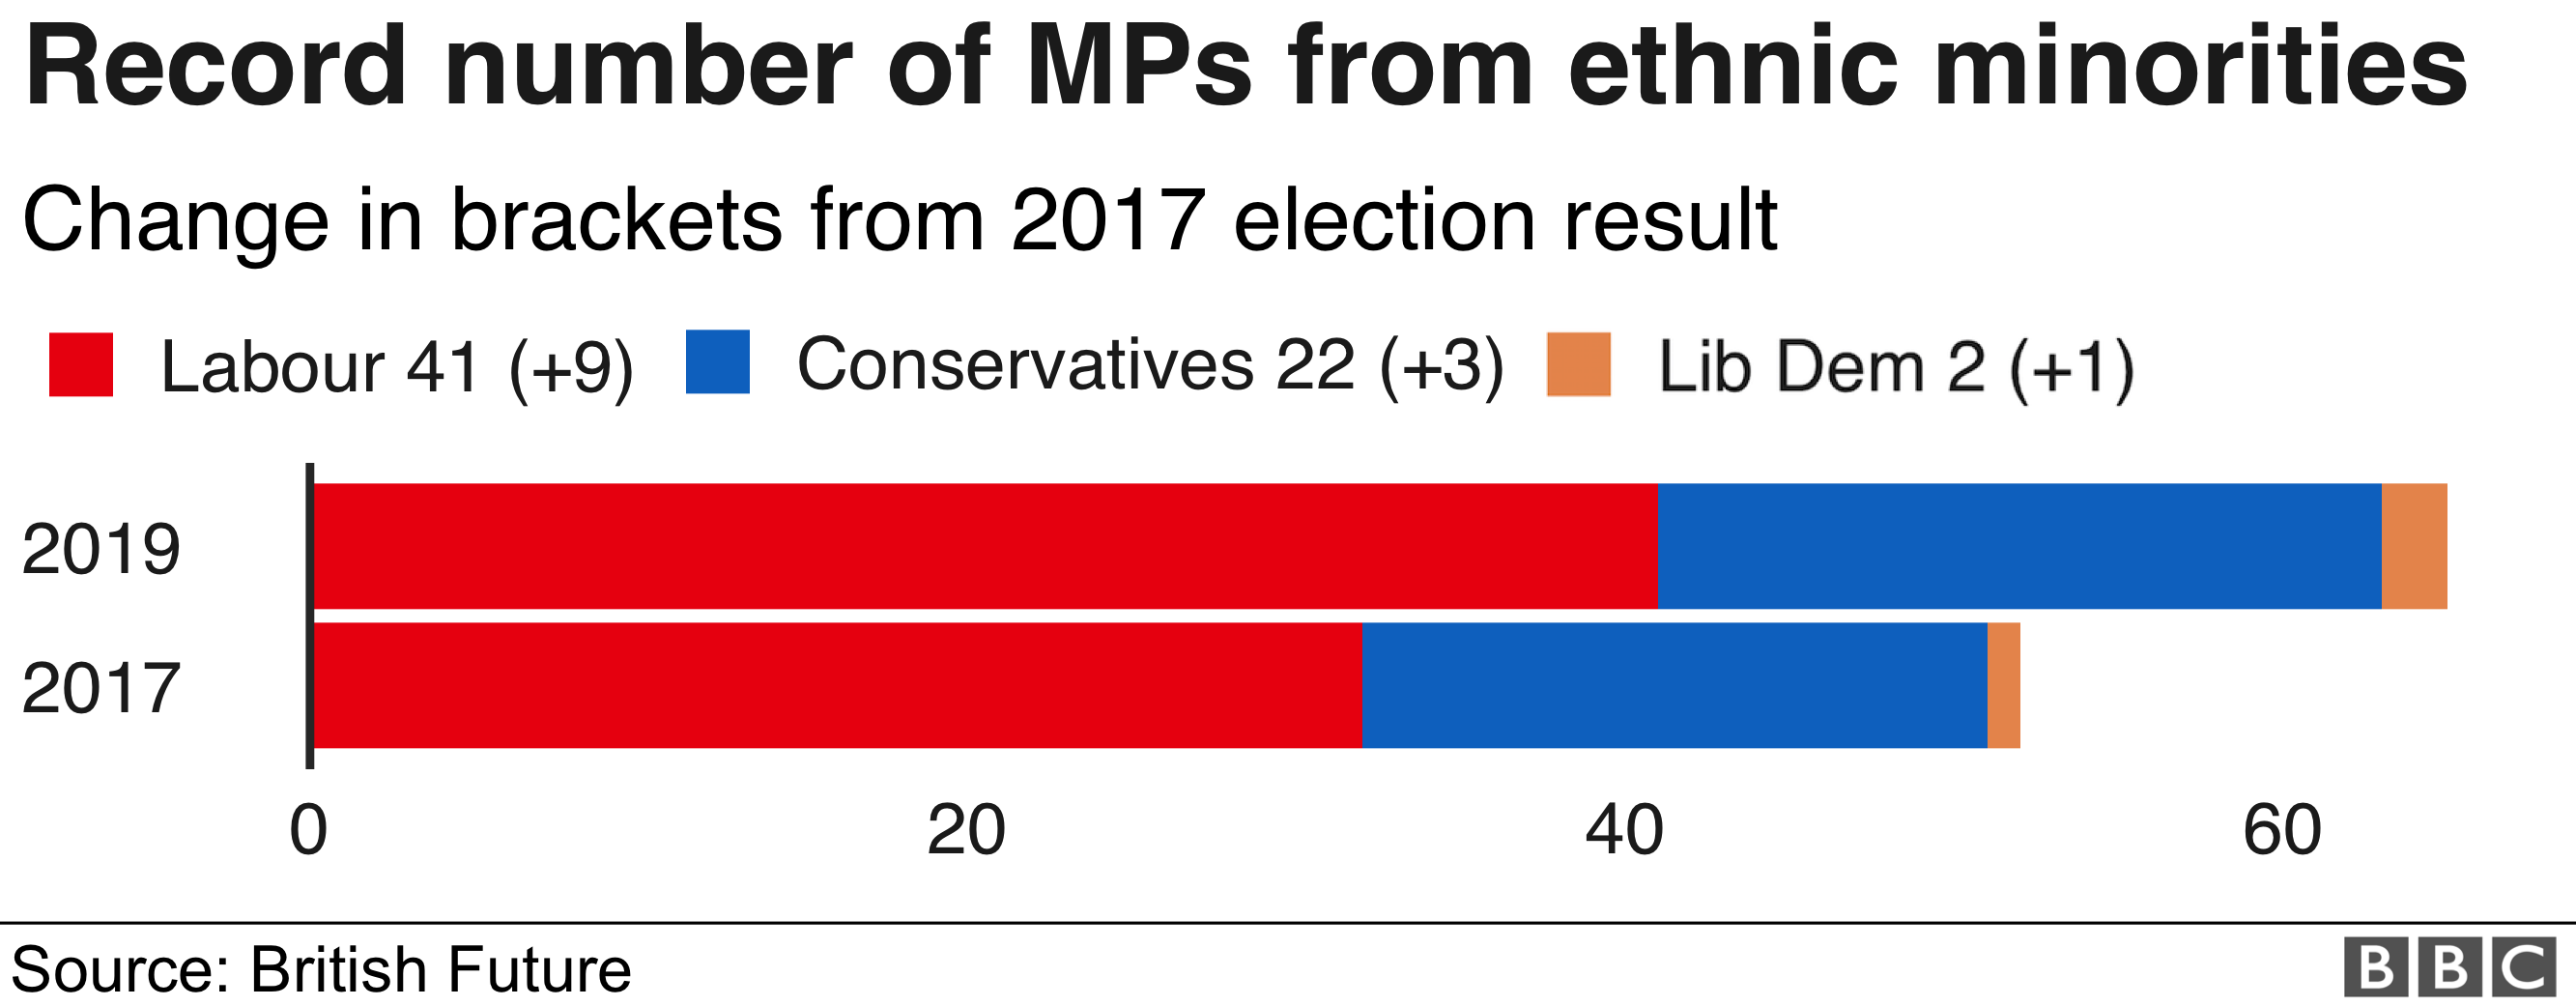 Record number of MPs from ethnic minorities